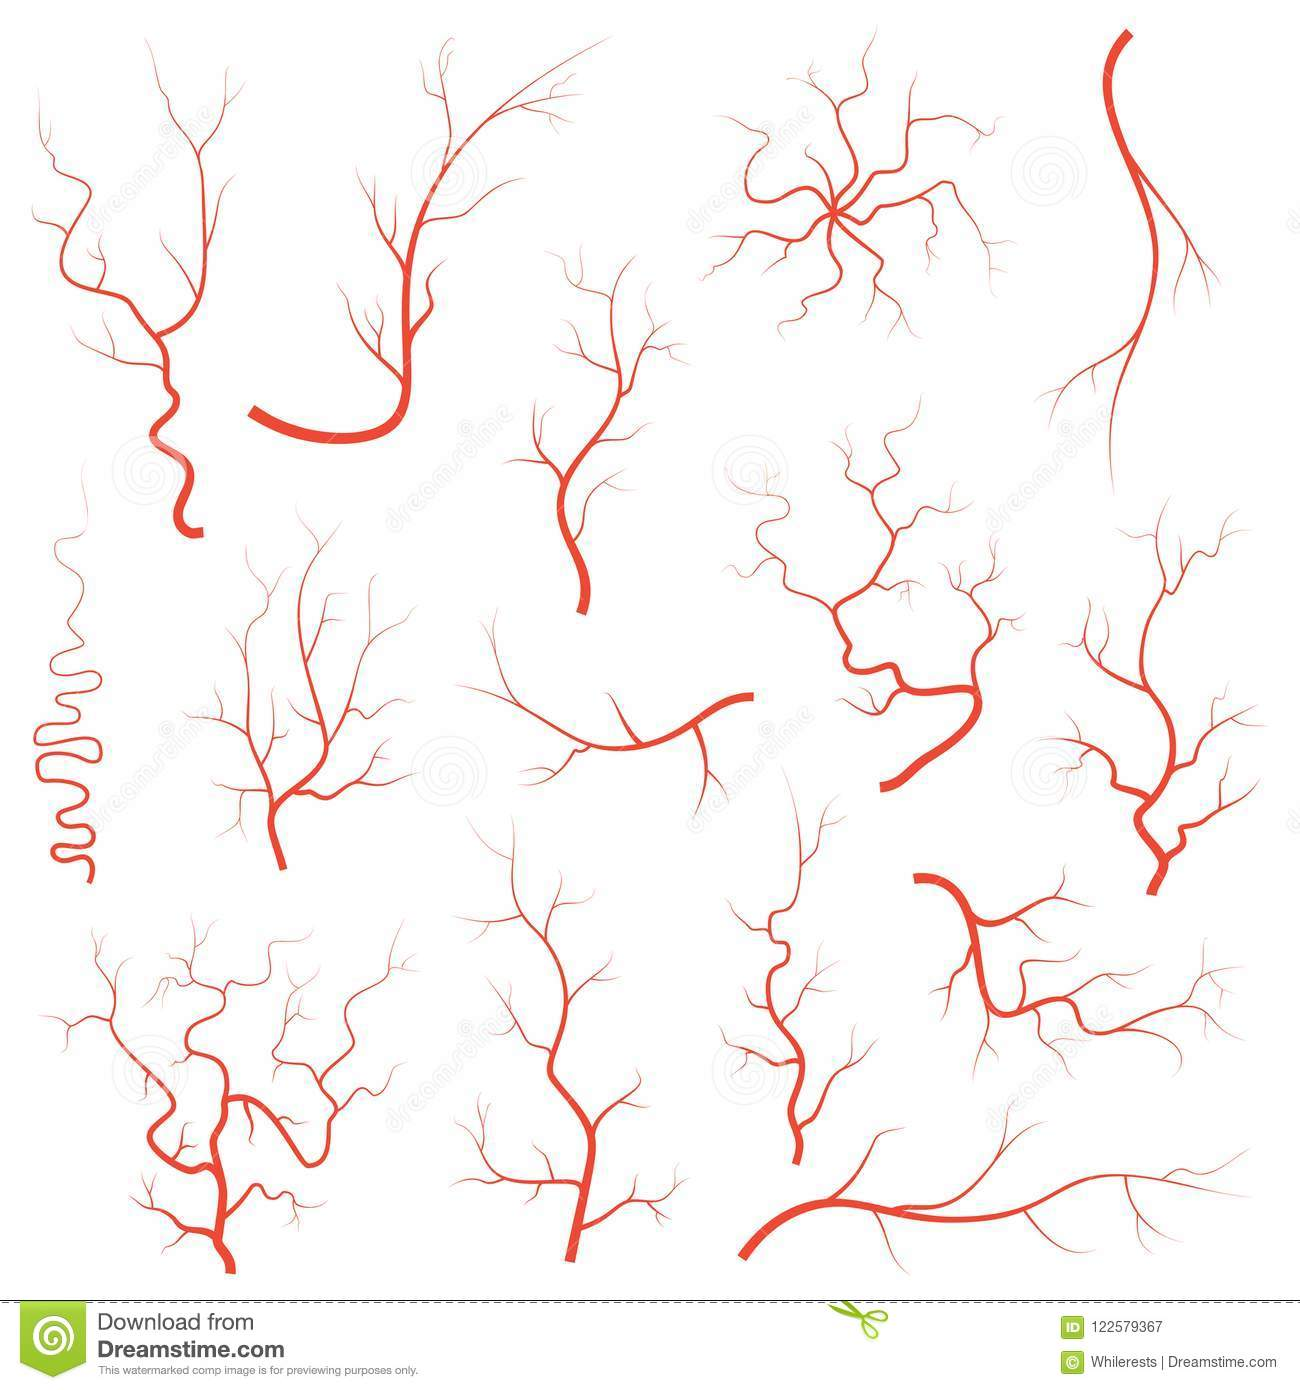 Human Red Eye Veins Set Anatomy Blood Vessel Arteries Illustration